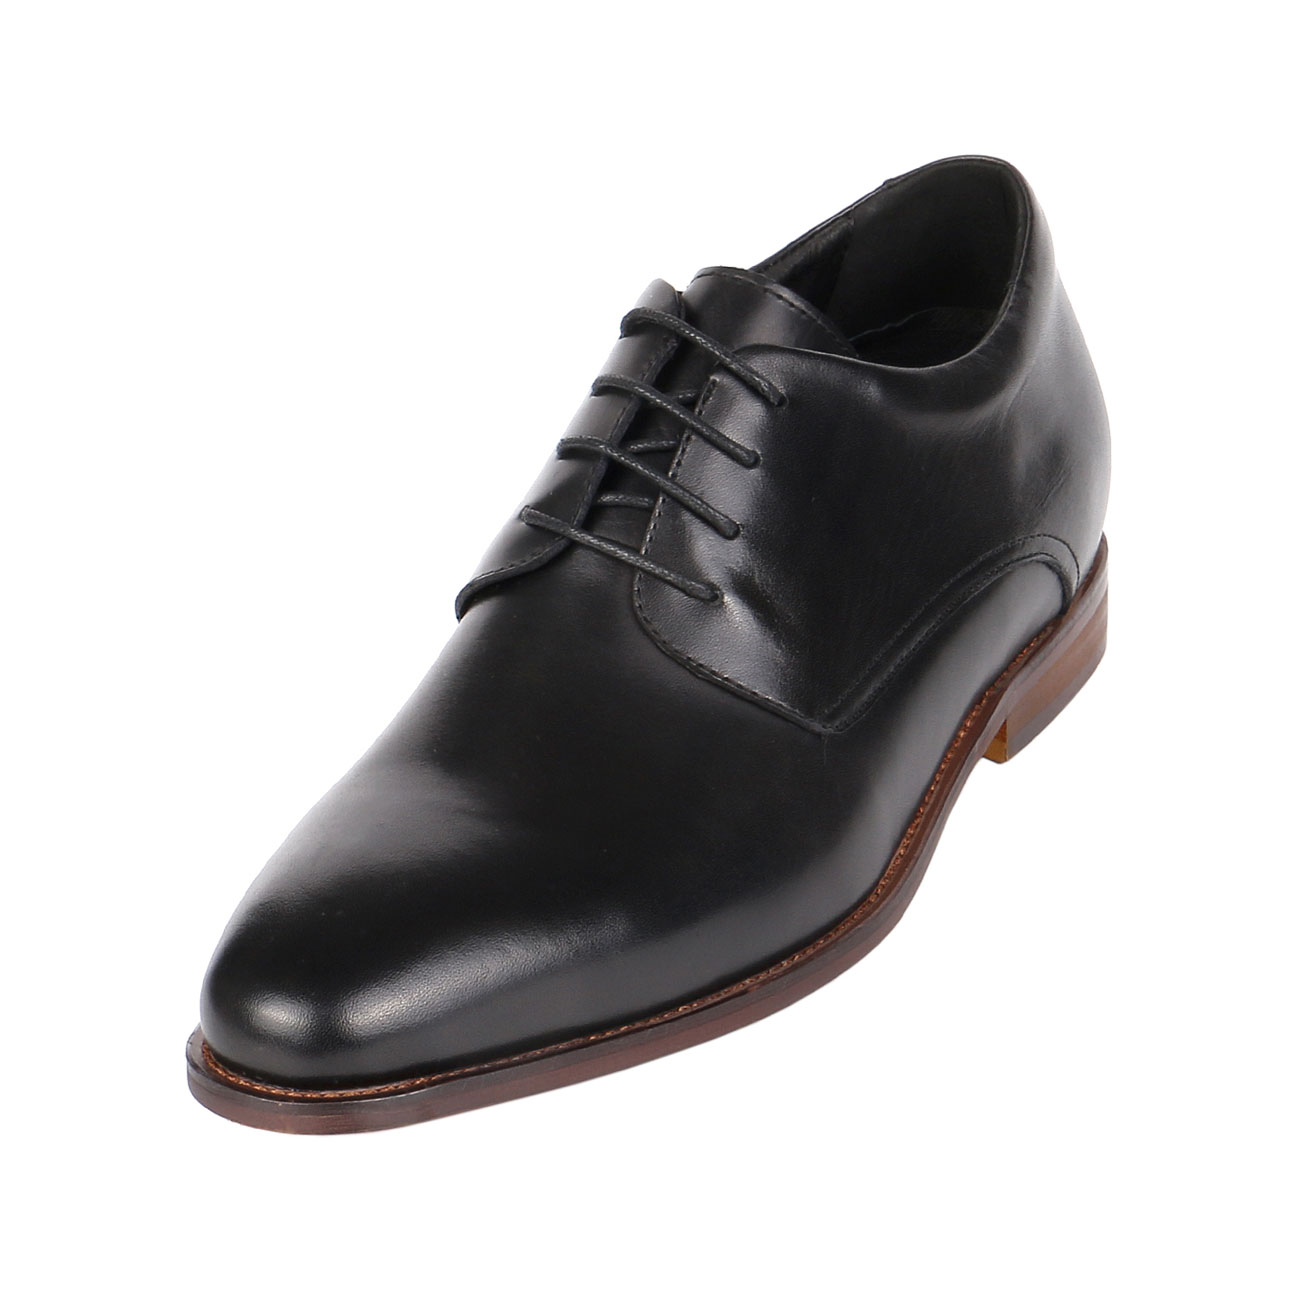 Men's Novel Slim Tall Shoes for Increasing Height